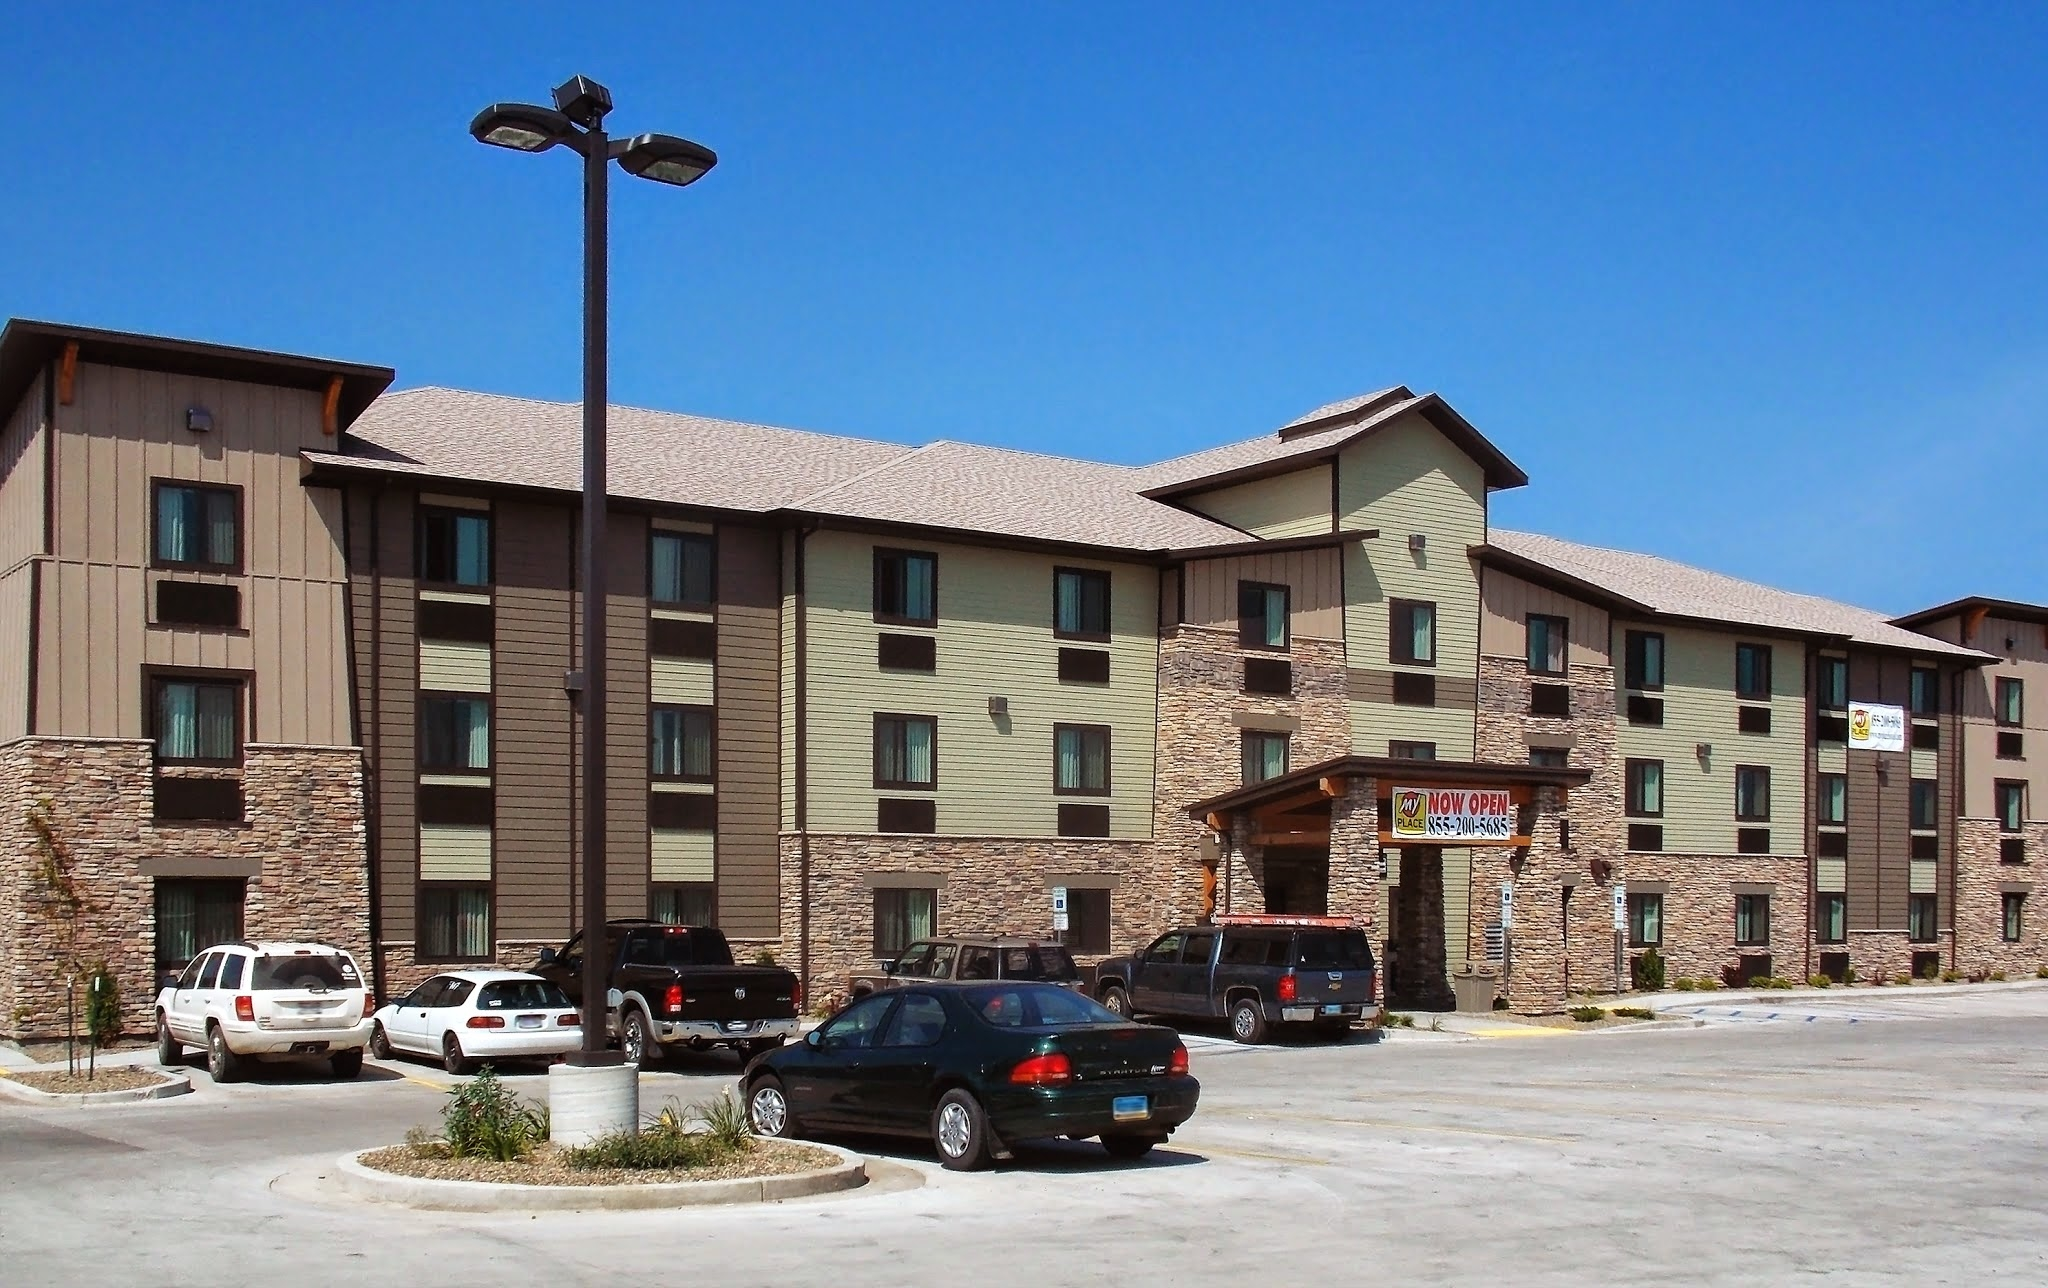 Cheap Extended Stay Motels